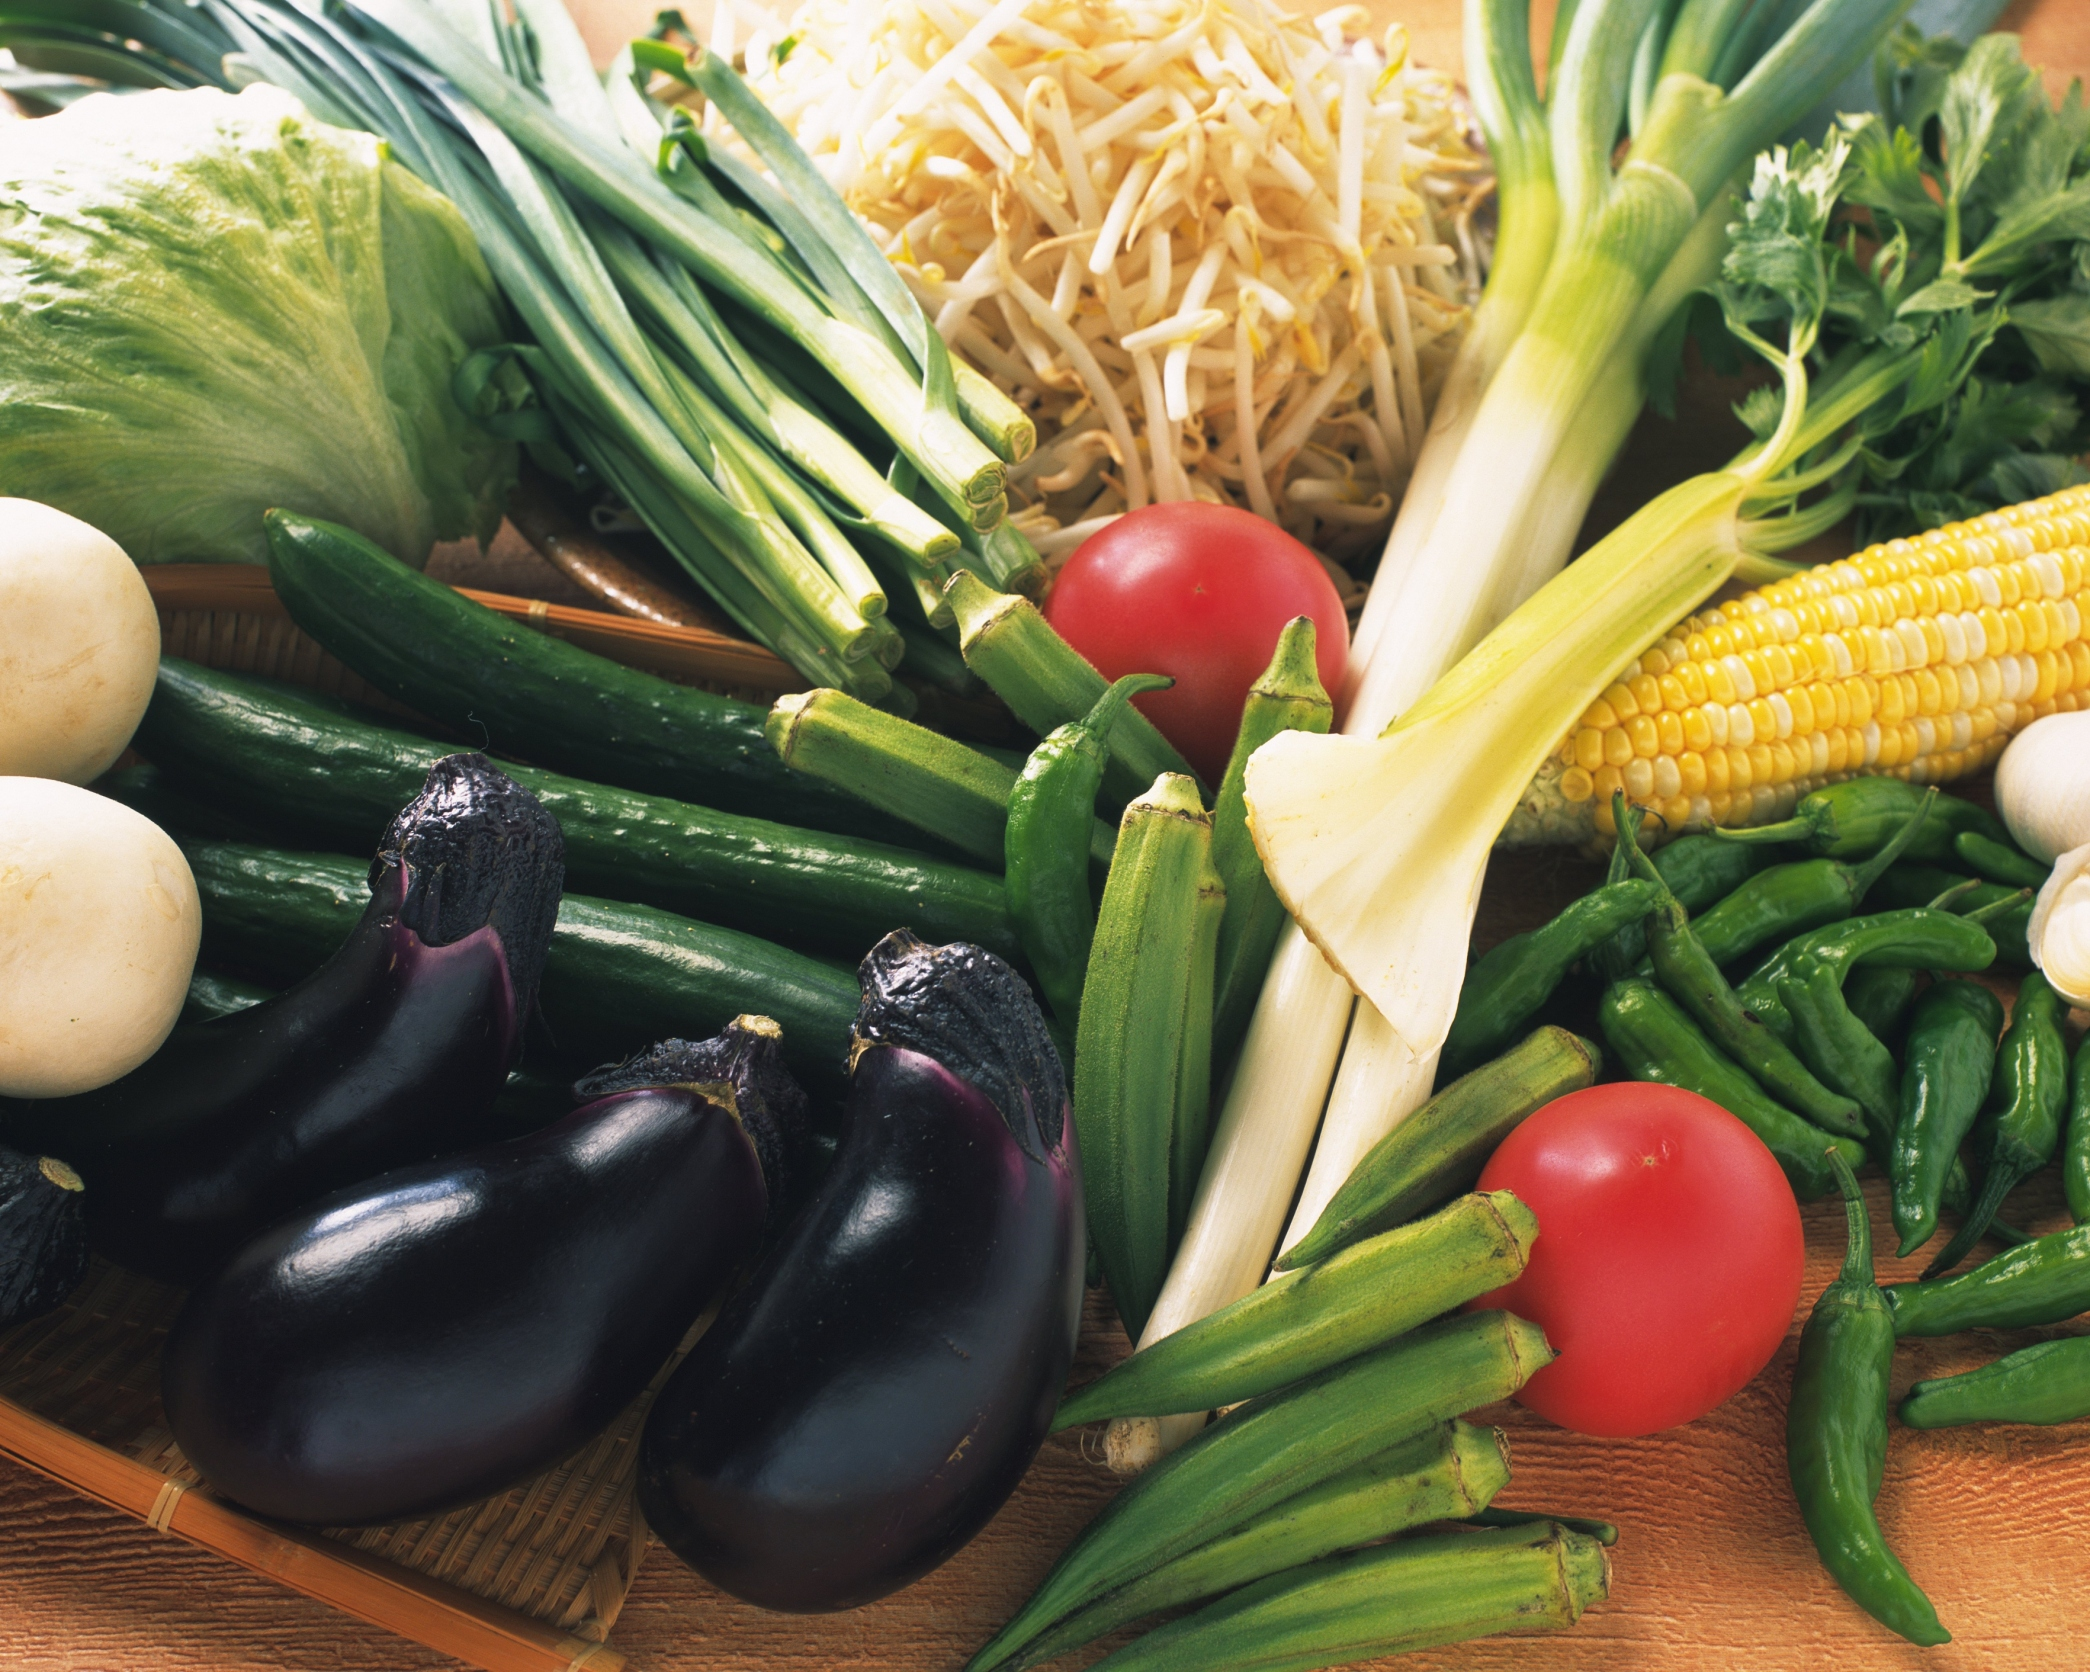 Is it effective to soak vegetables for getting rid of nitrates